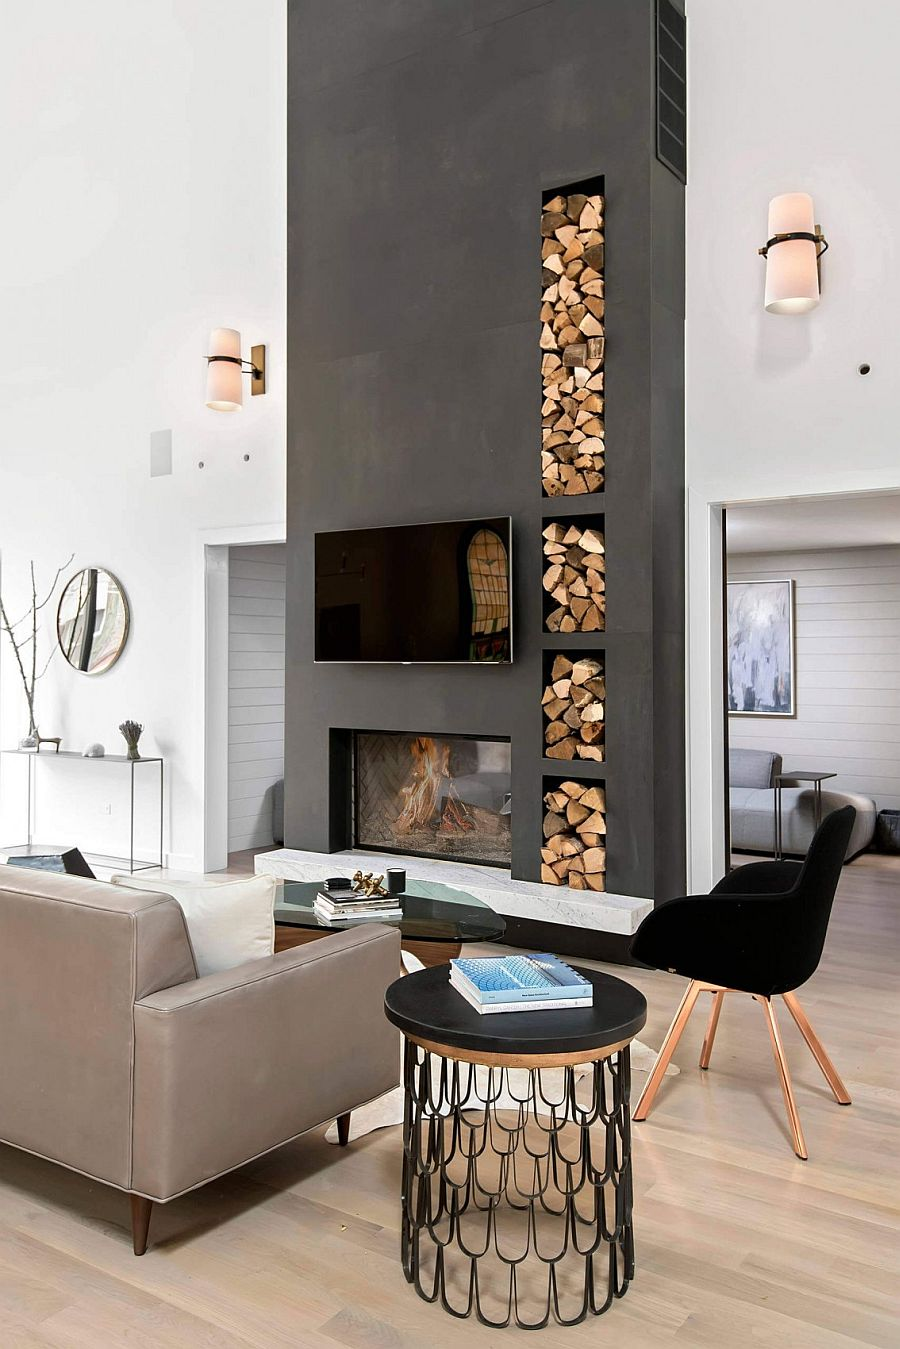 Fotos De Salones Con Chimenea Chicago Church Converted Into A Soaring Single-family Home